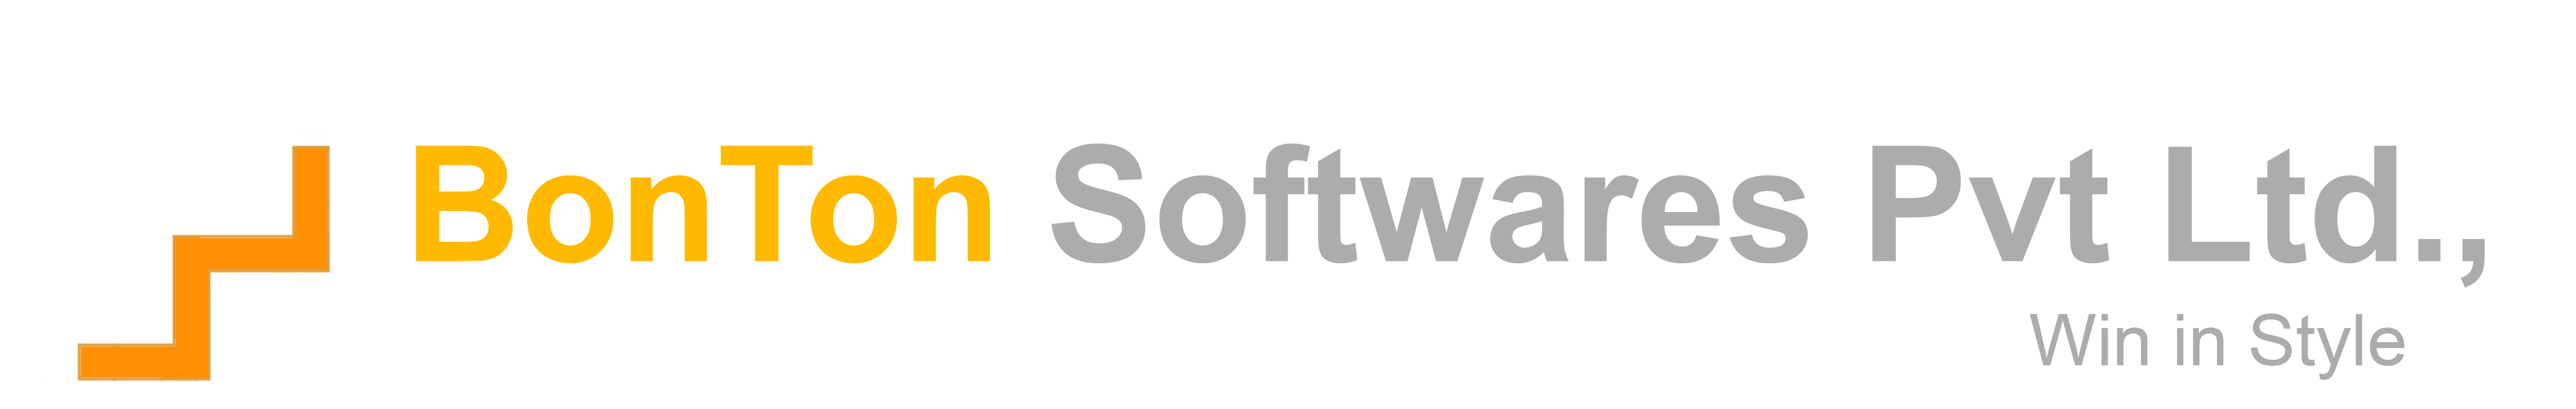 Bon Ton Softwares Pvt. Ltd.- - Software Solutions company logo